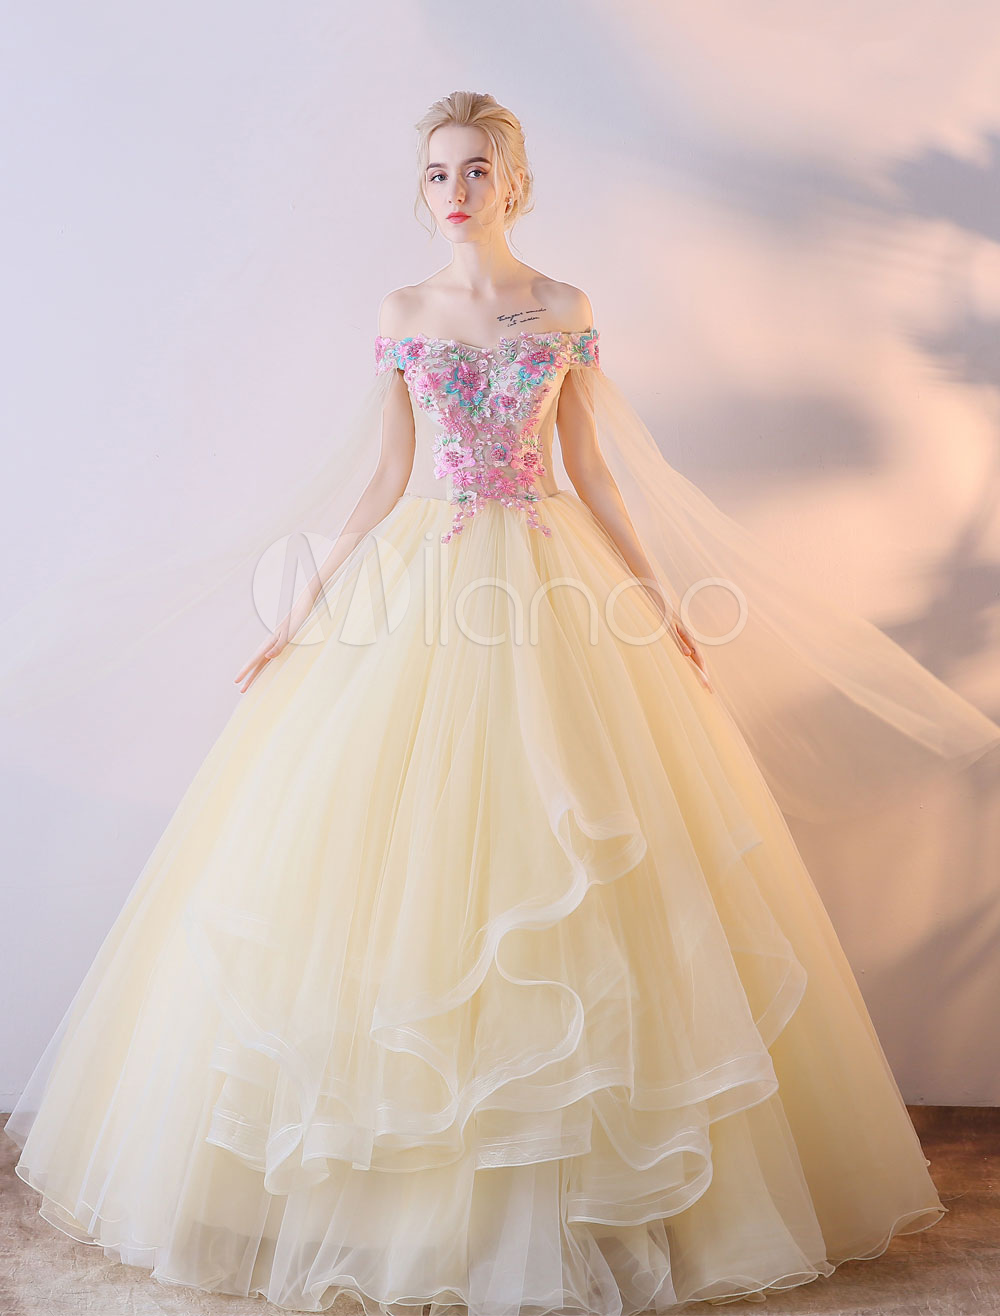 Champagne Quinceanera Dresses Off The Shoulder Prom Gown Flowers Princess Ball Gown Colored Wedding Dress